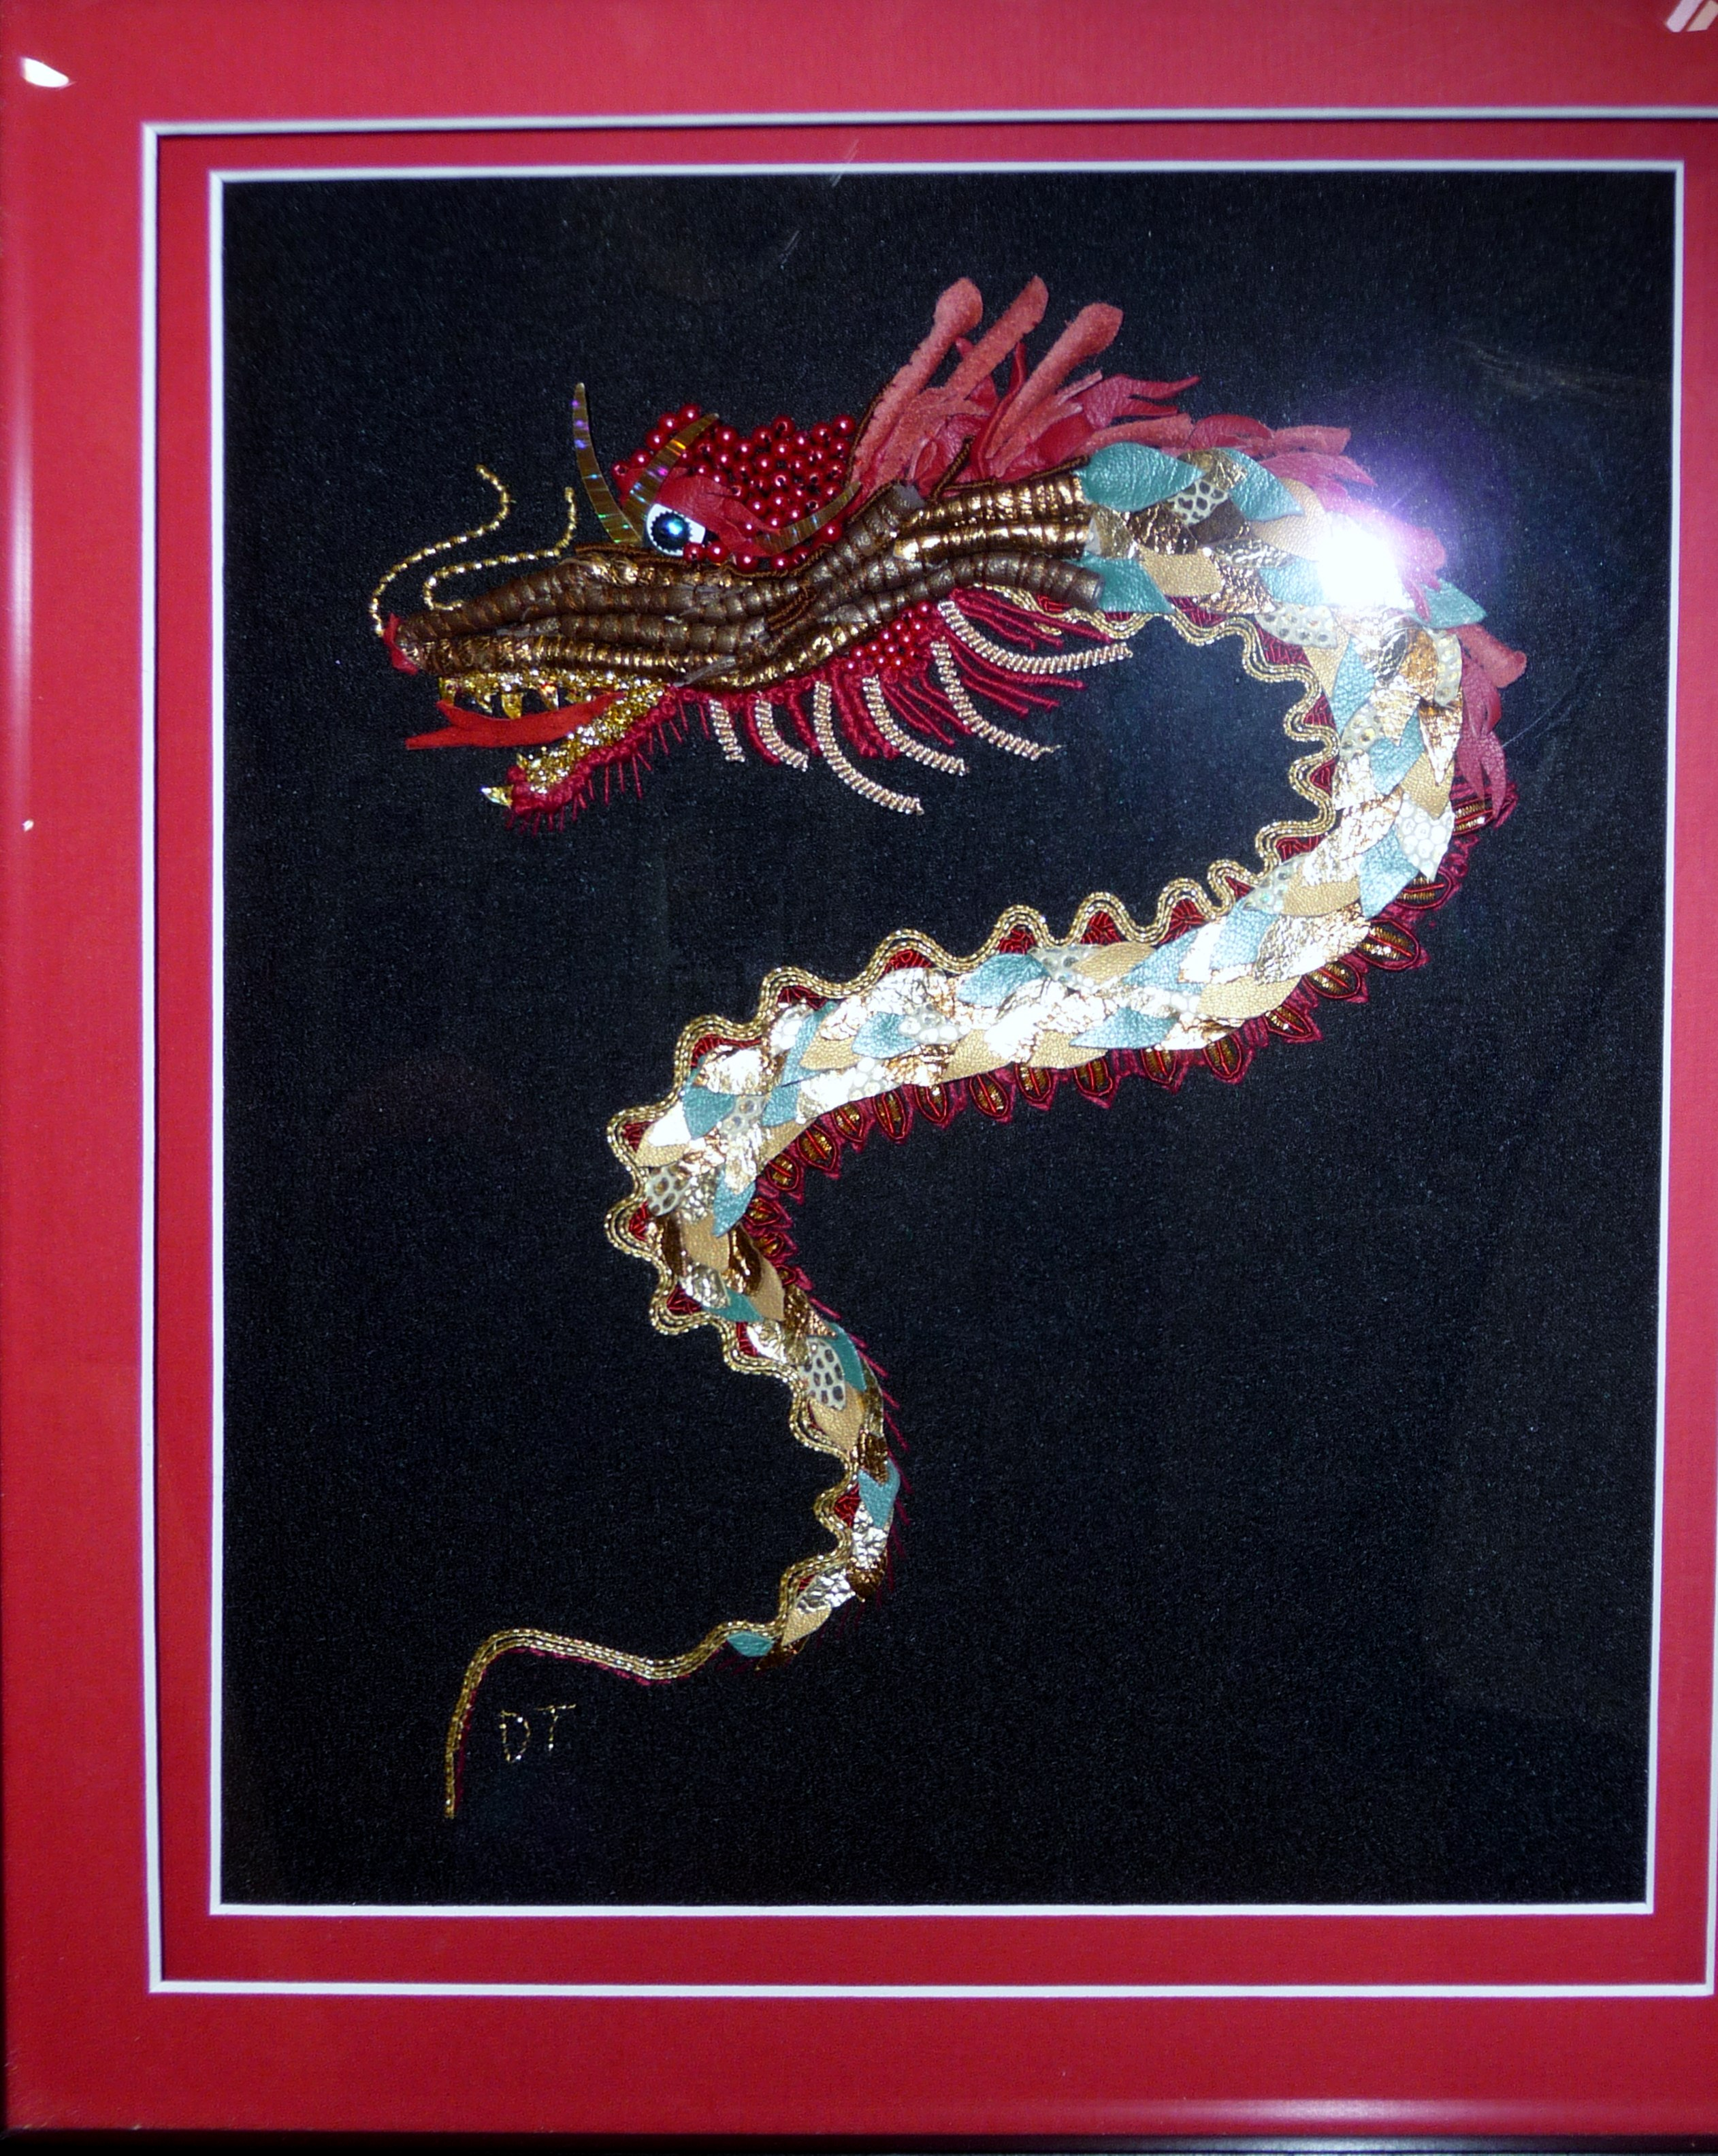 DRAGON by Dianne Thomas, goldwork with leather